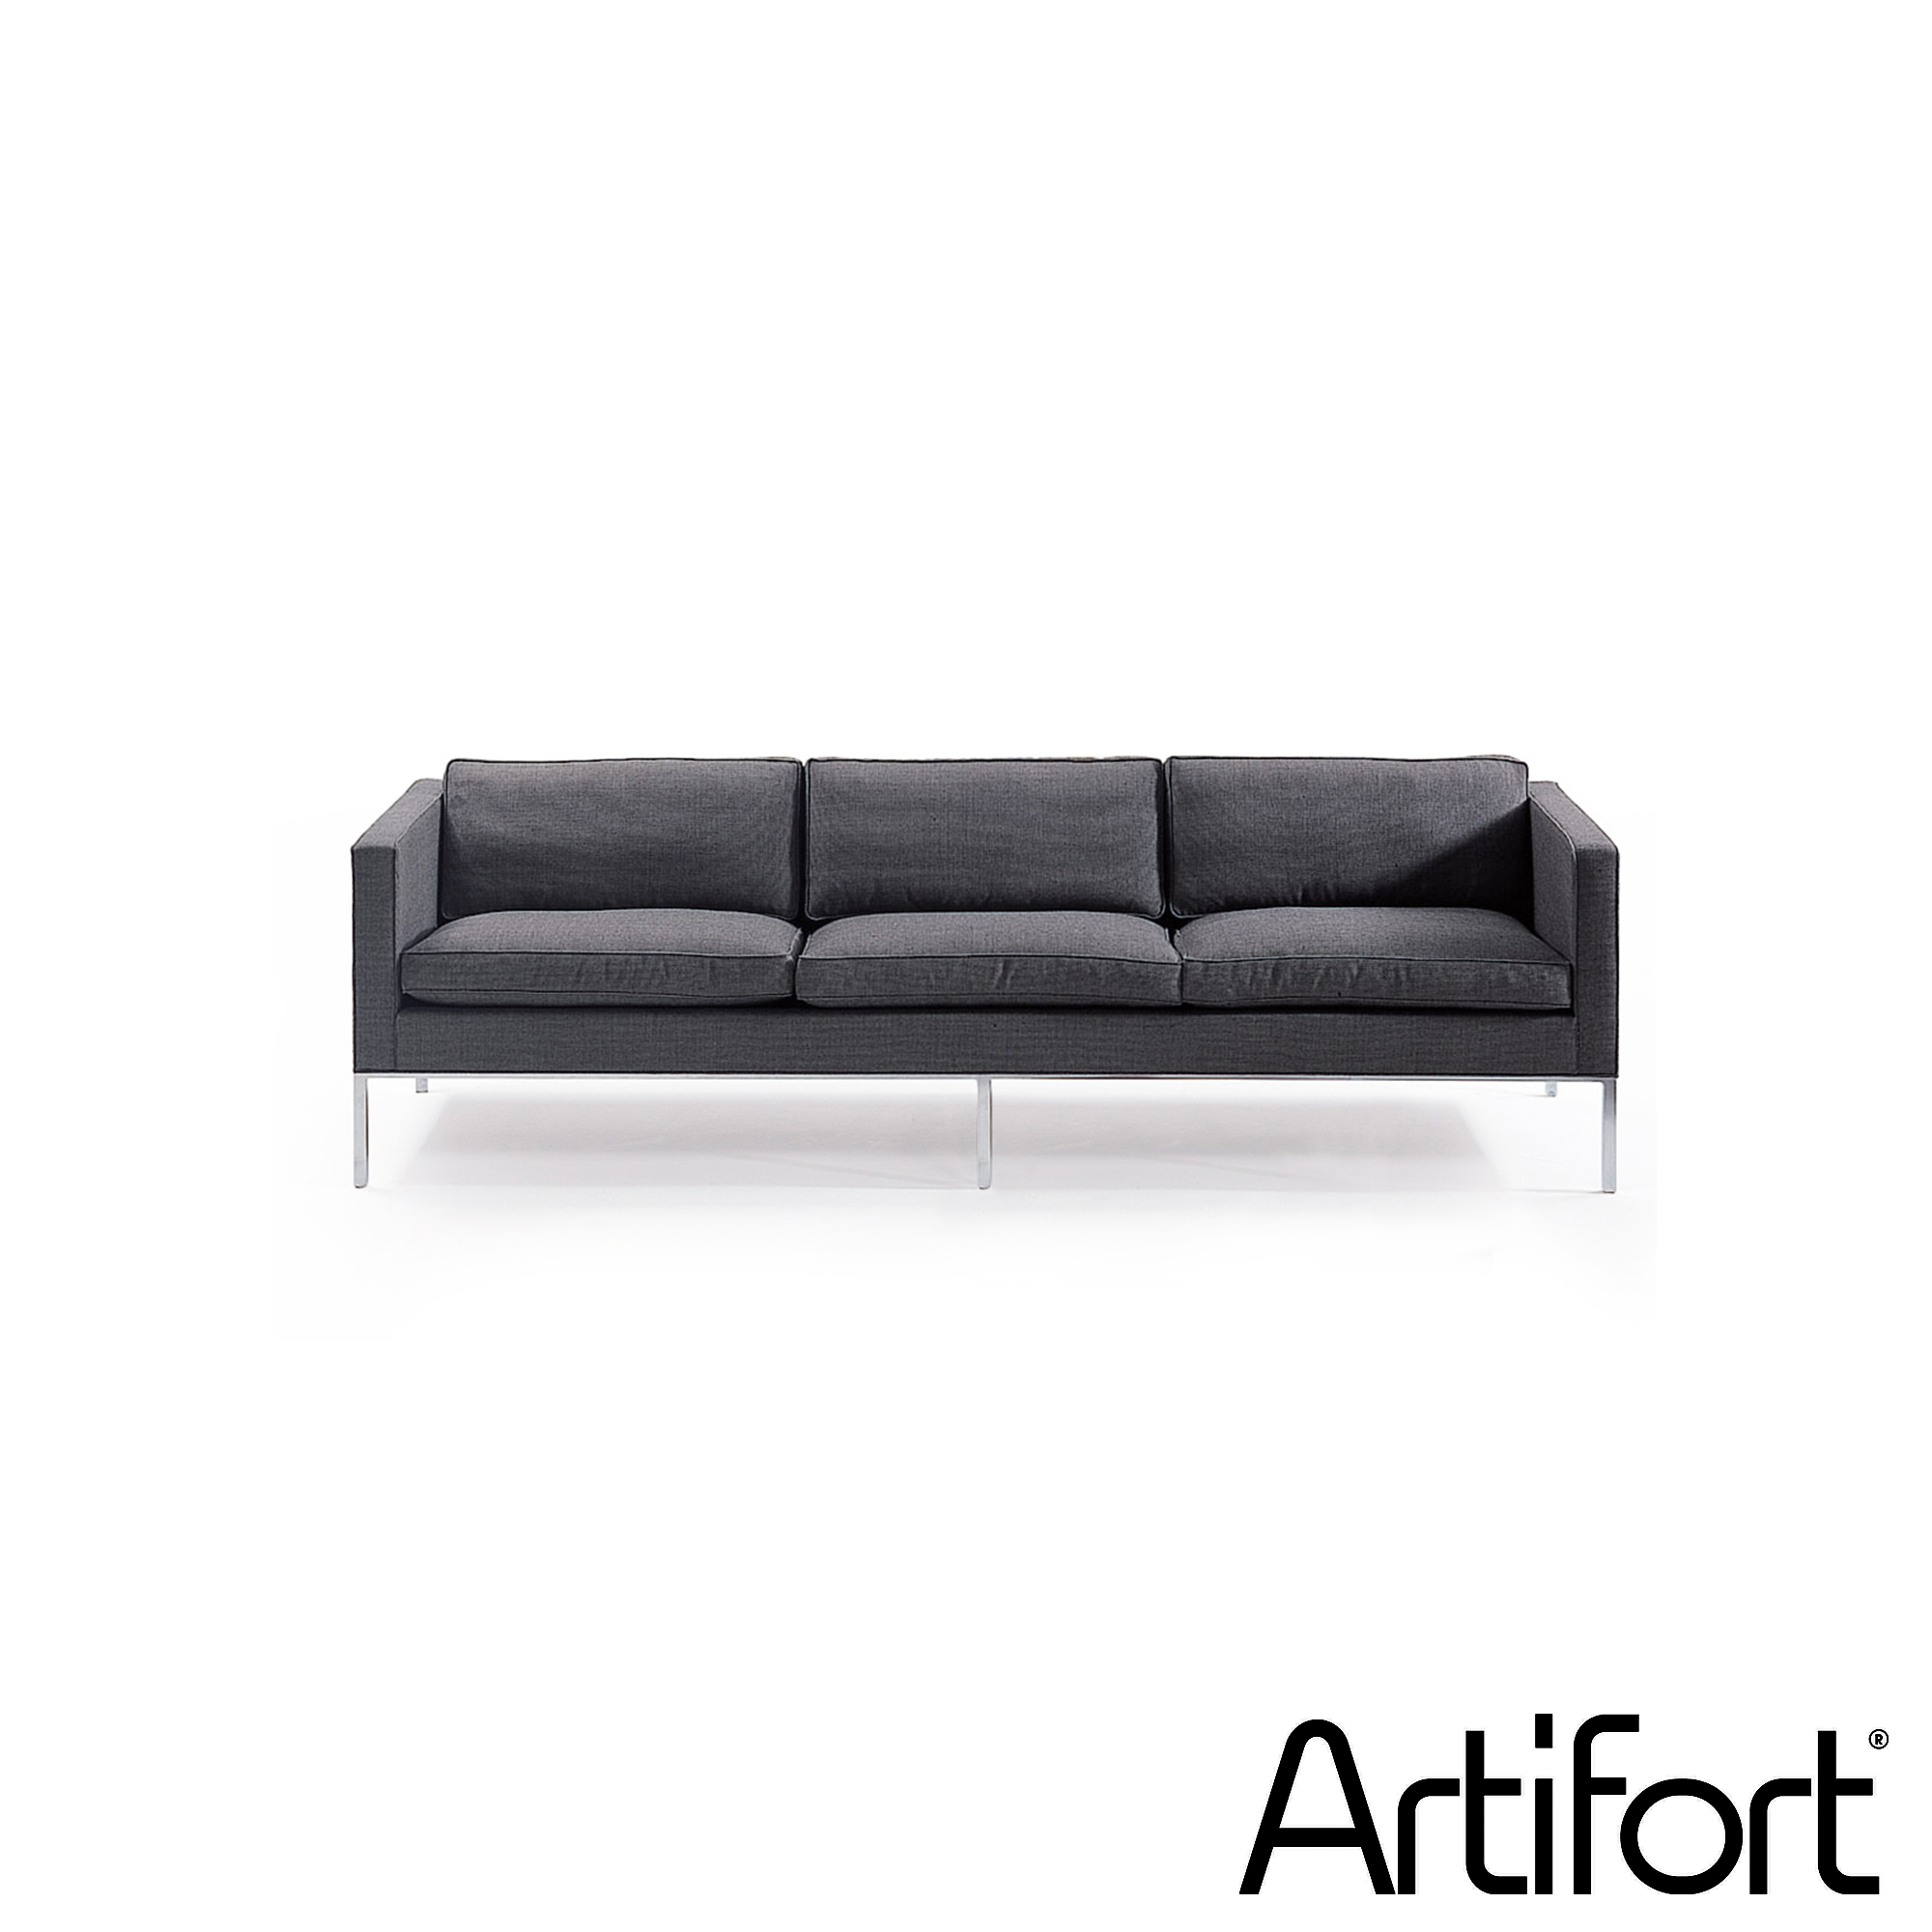 Artifort - 905 Sofa